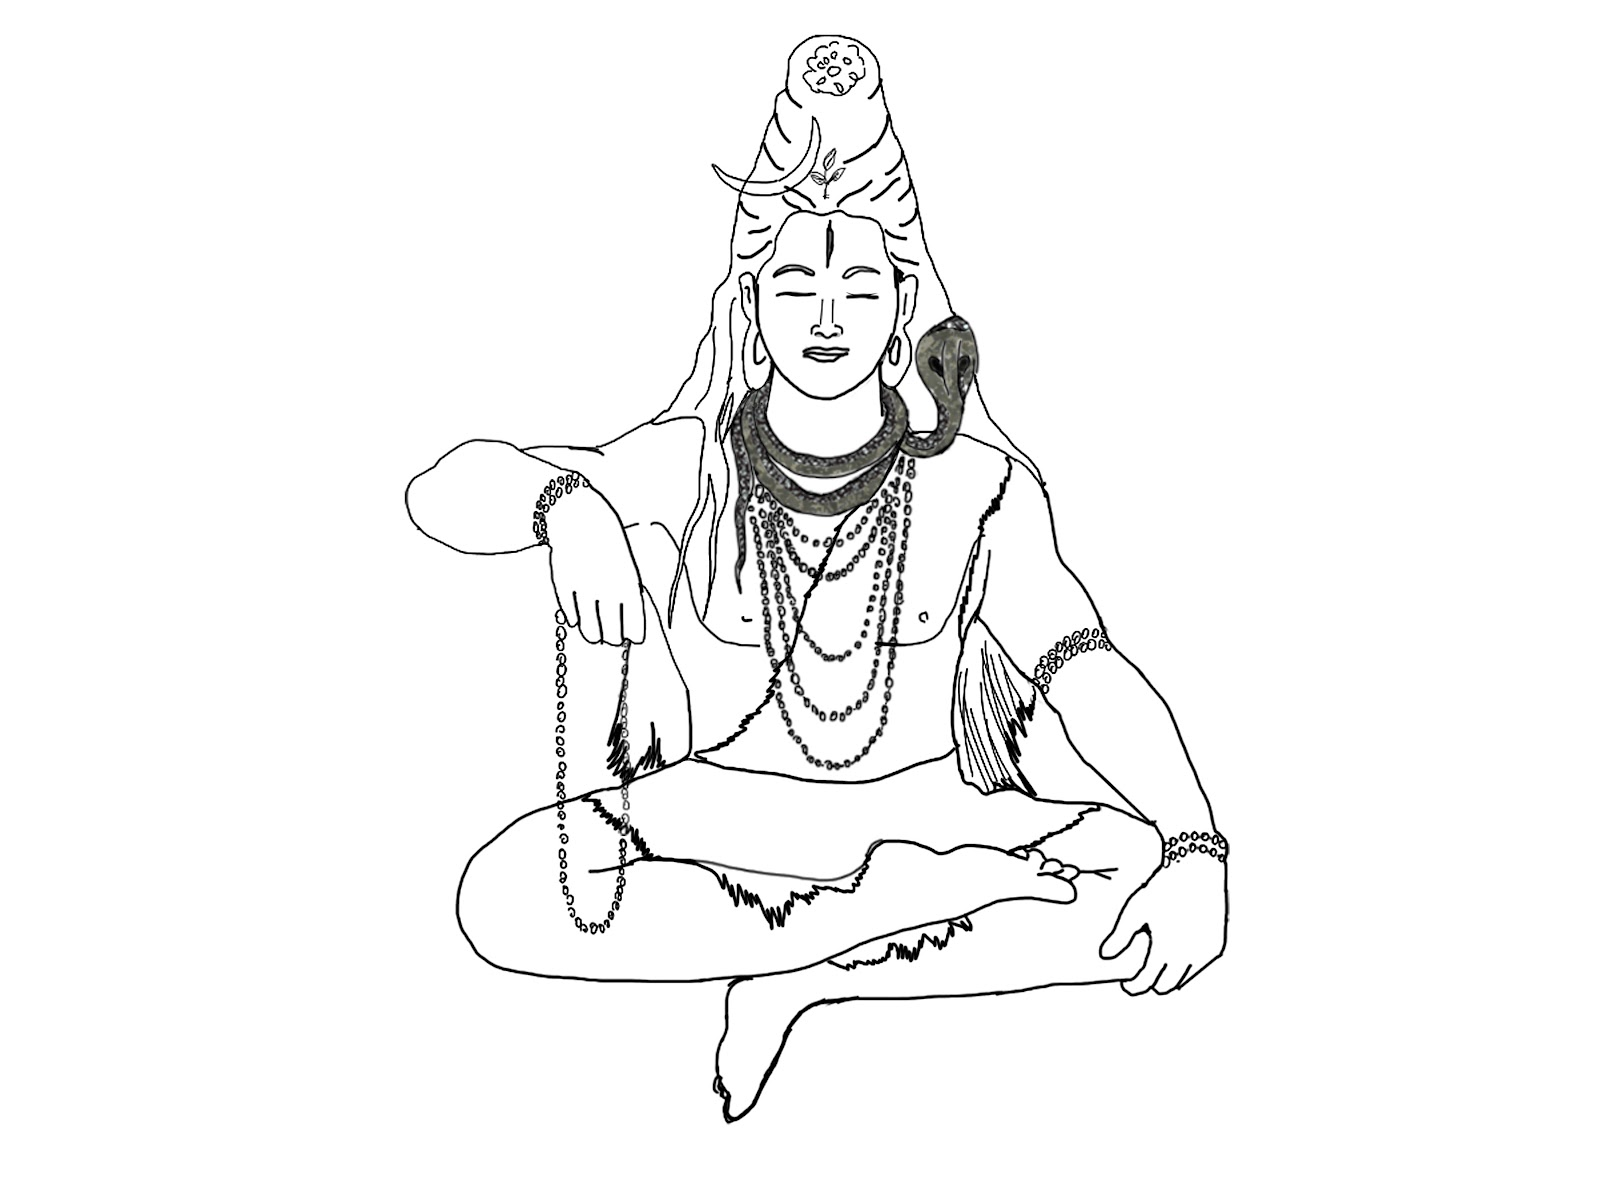 how to draw lord shiva shiva drawing at getdrawings free download how shiva to lord draw